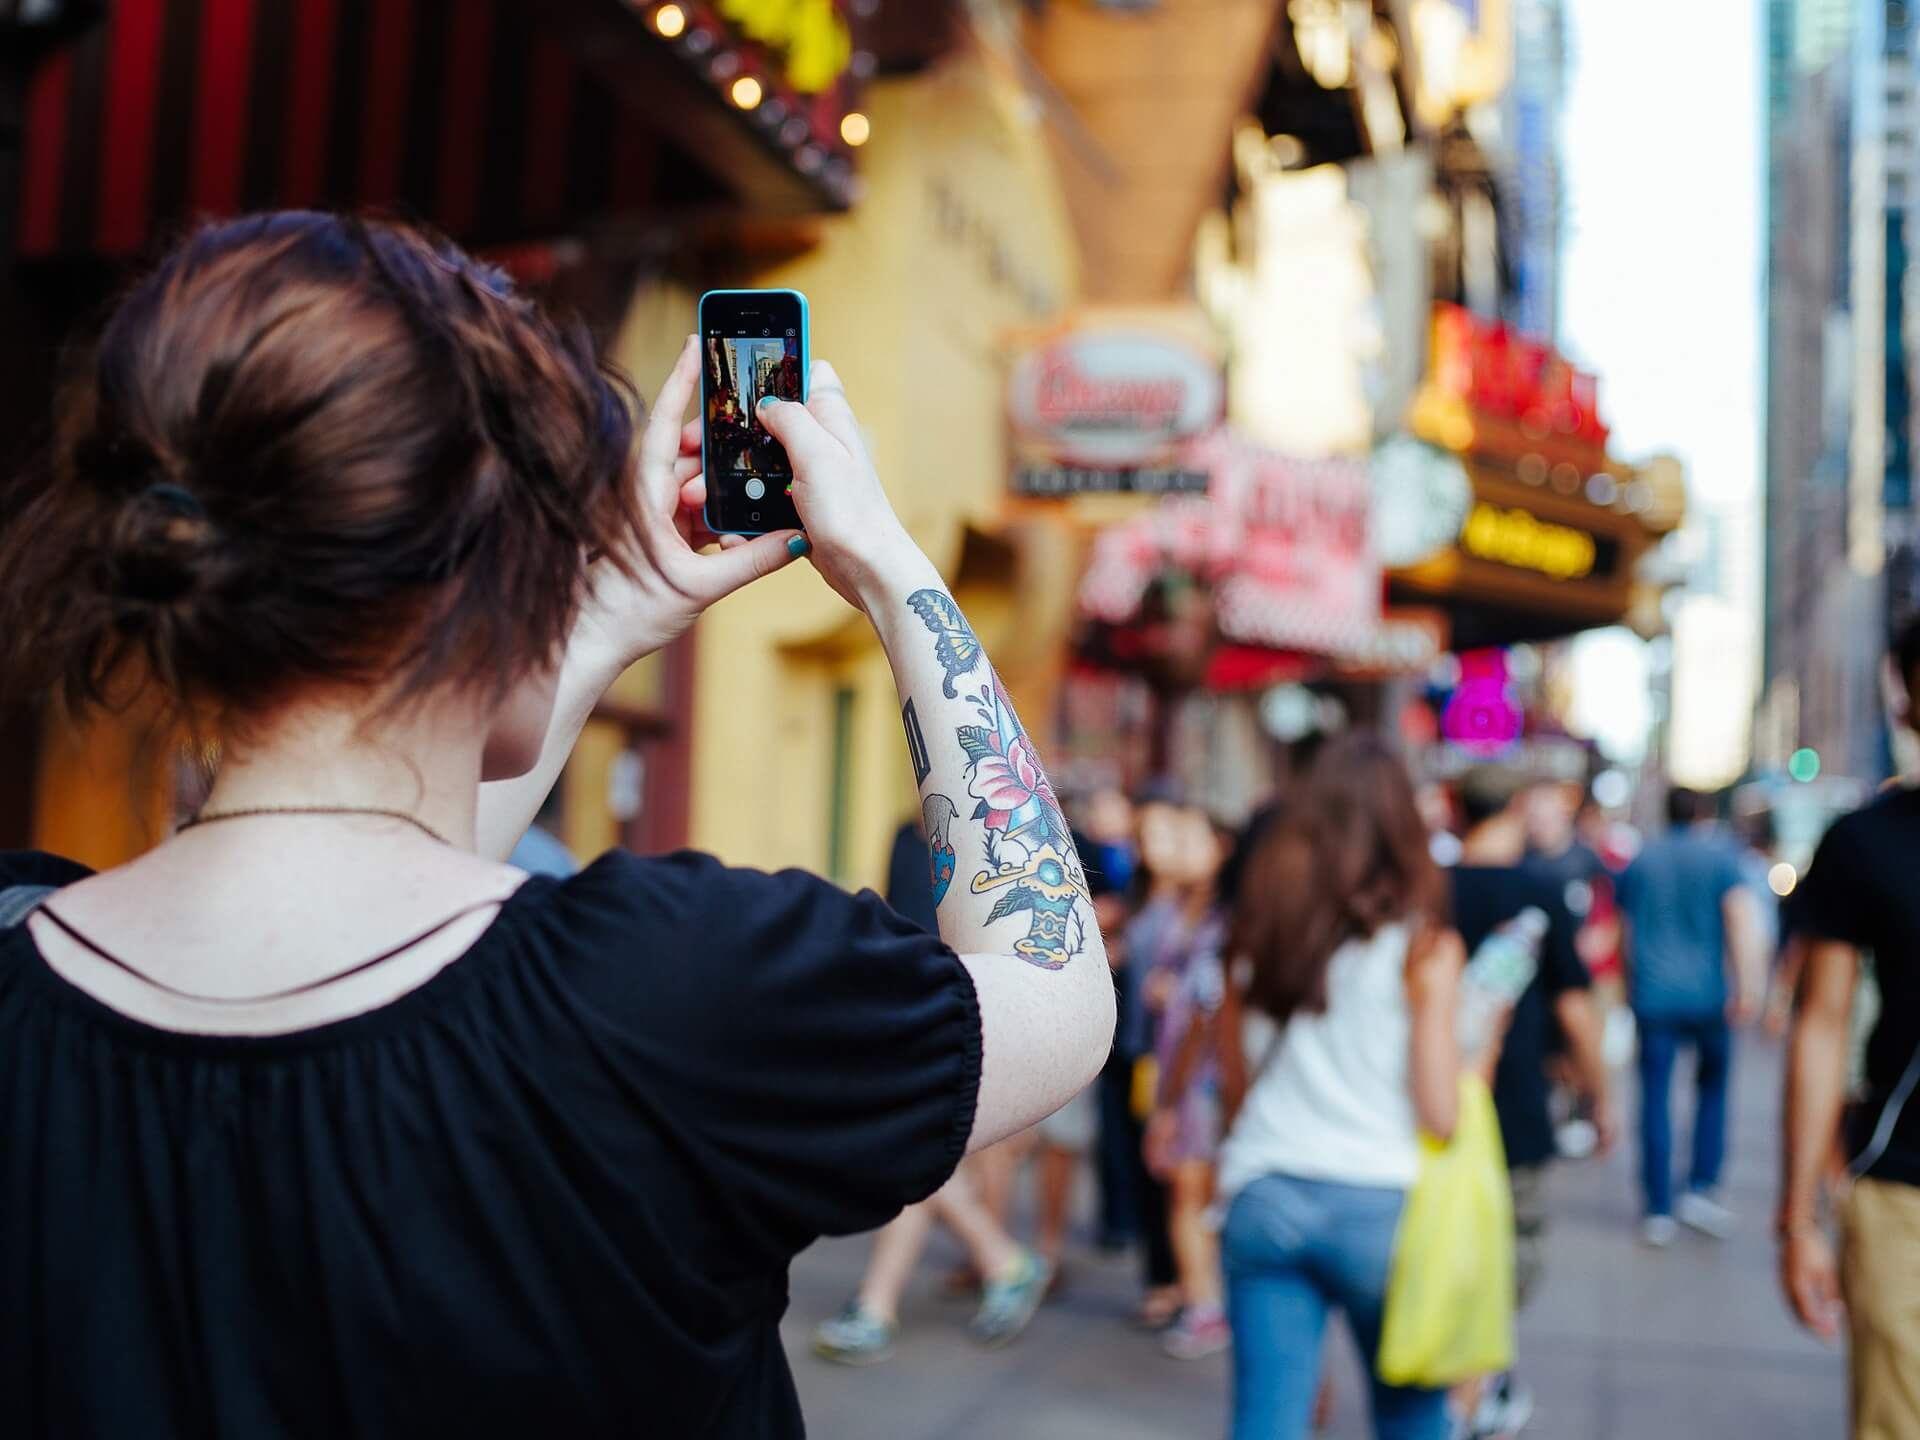 This image displays a millennial woman taking a picture with her phone and portrays relevance to social media and technology for nonprofit donations